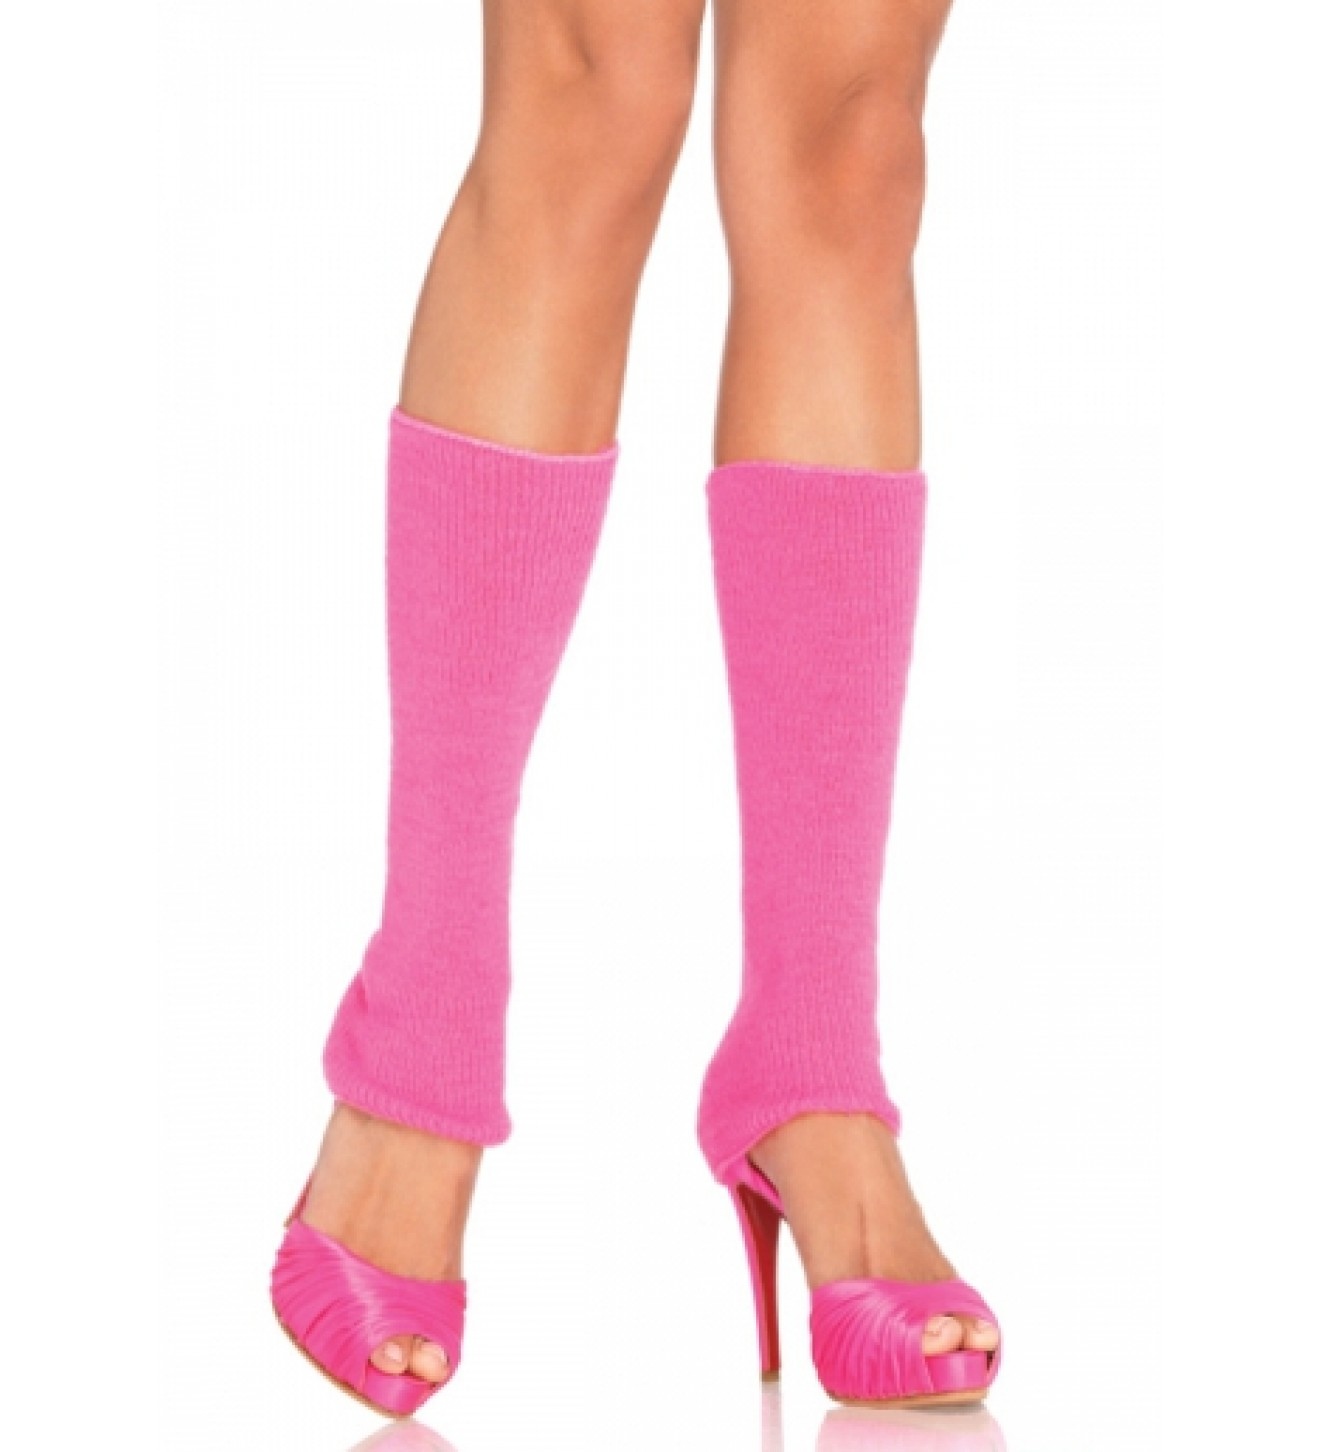 Keep your legs warm or just make a fun fashion statement in these sexy